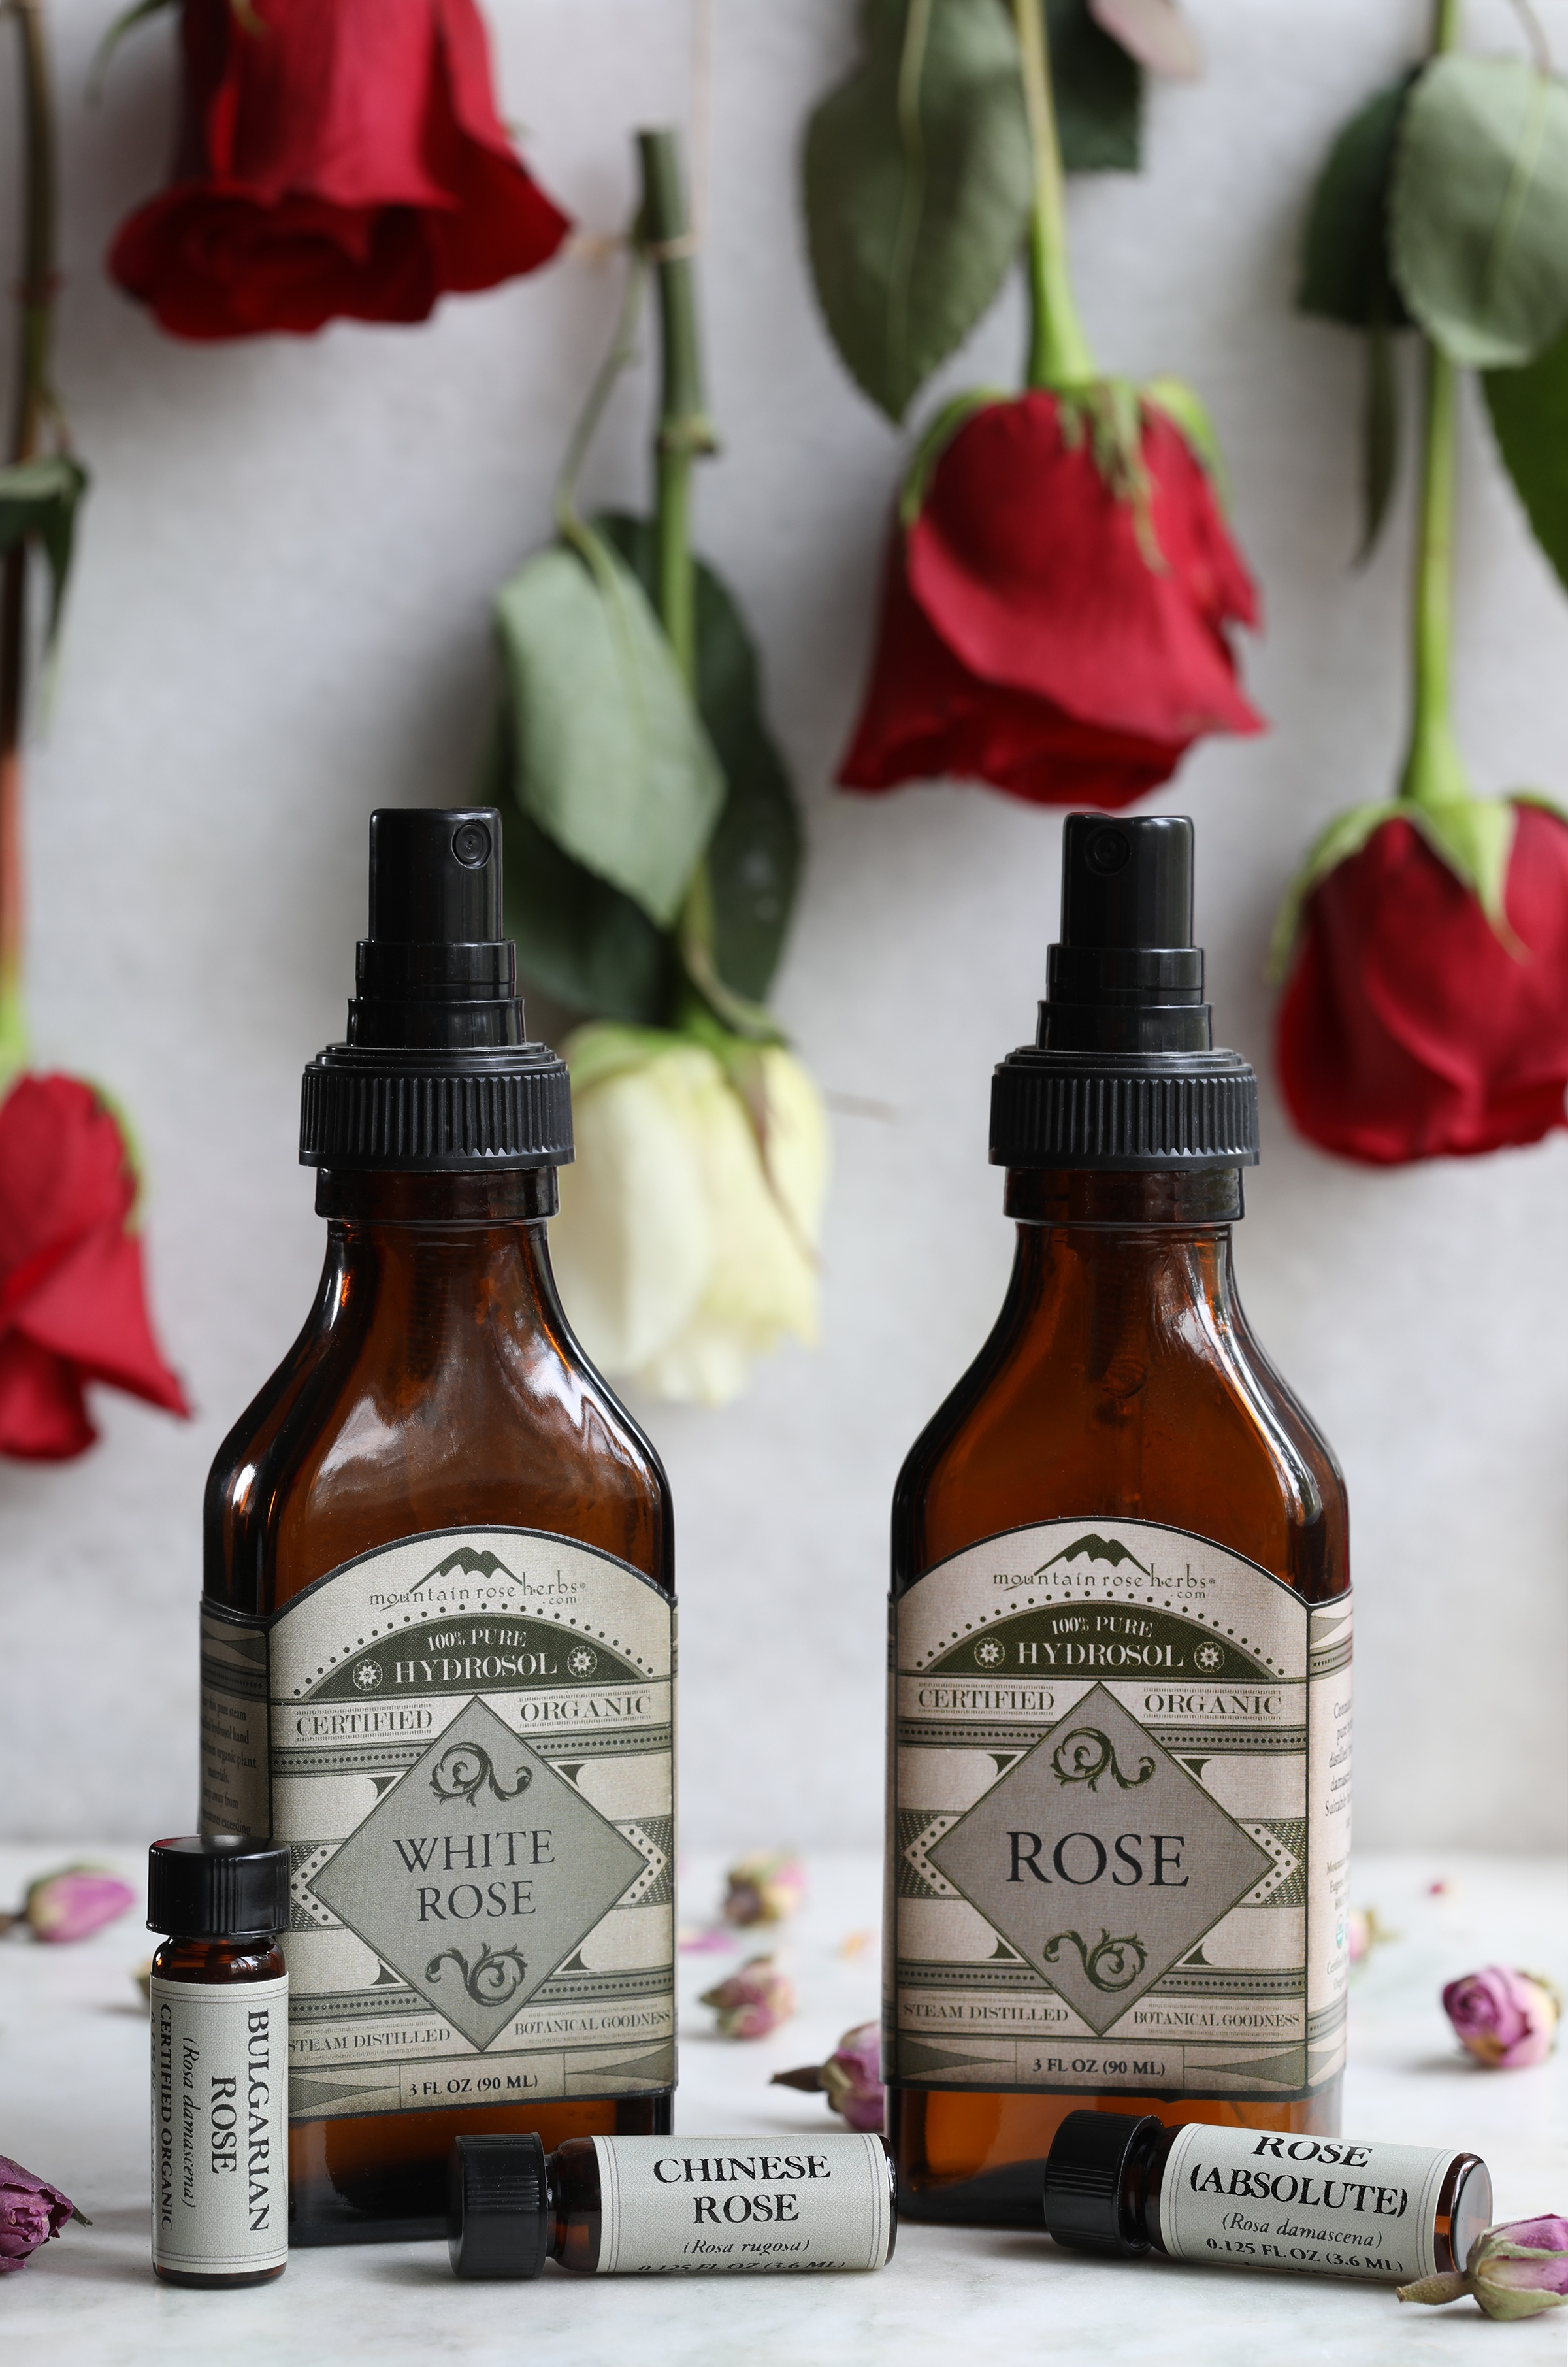 White rose hydrosol, rose hydrosol, and various rose essential oils laying out on counter with rose petals